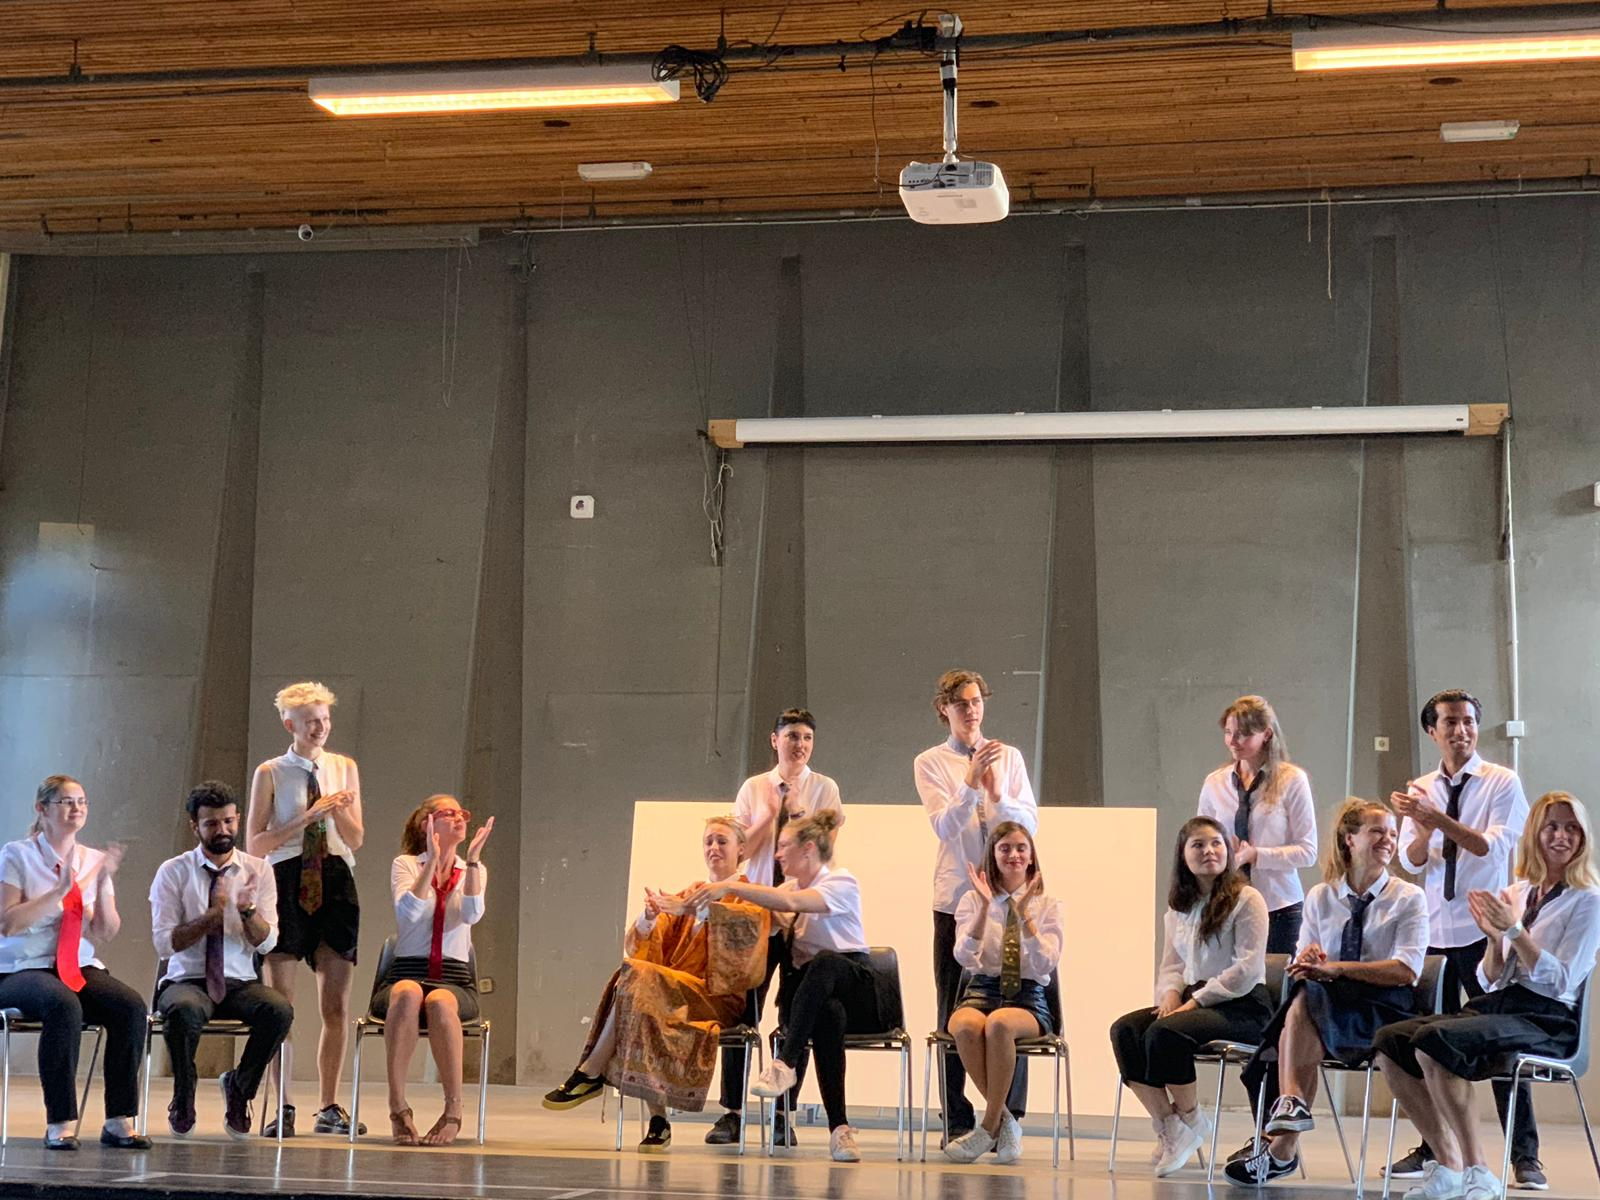 """From the show """"the magic school"""". The actors on stage are applauding. Some sit on chairs, some stand. Most of them wear a white shirt and tie"""